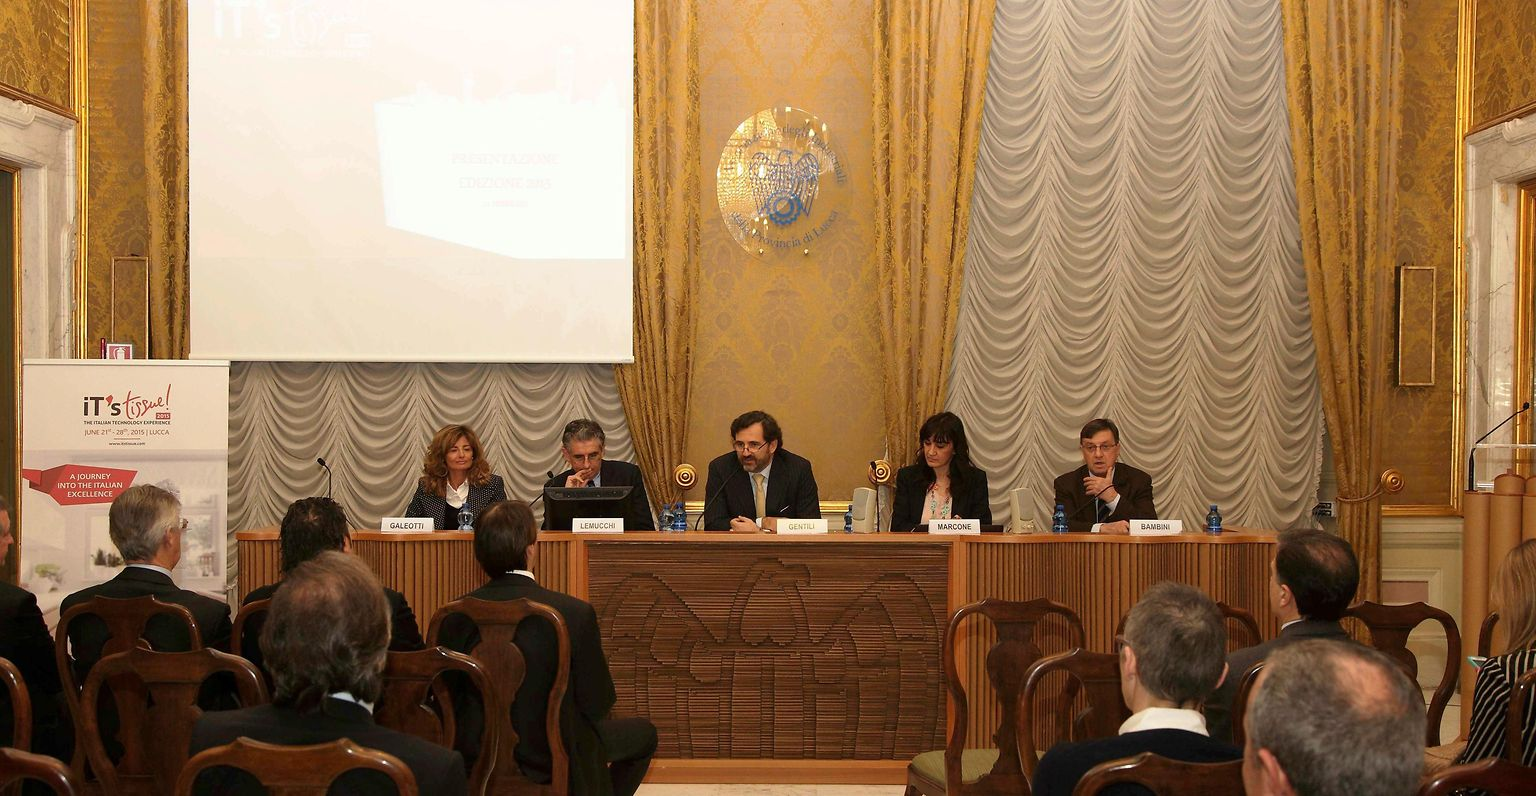 At the press conference of IT's Tissue 2015